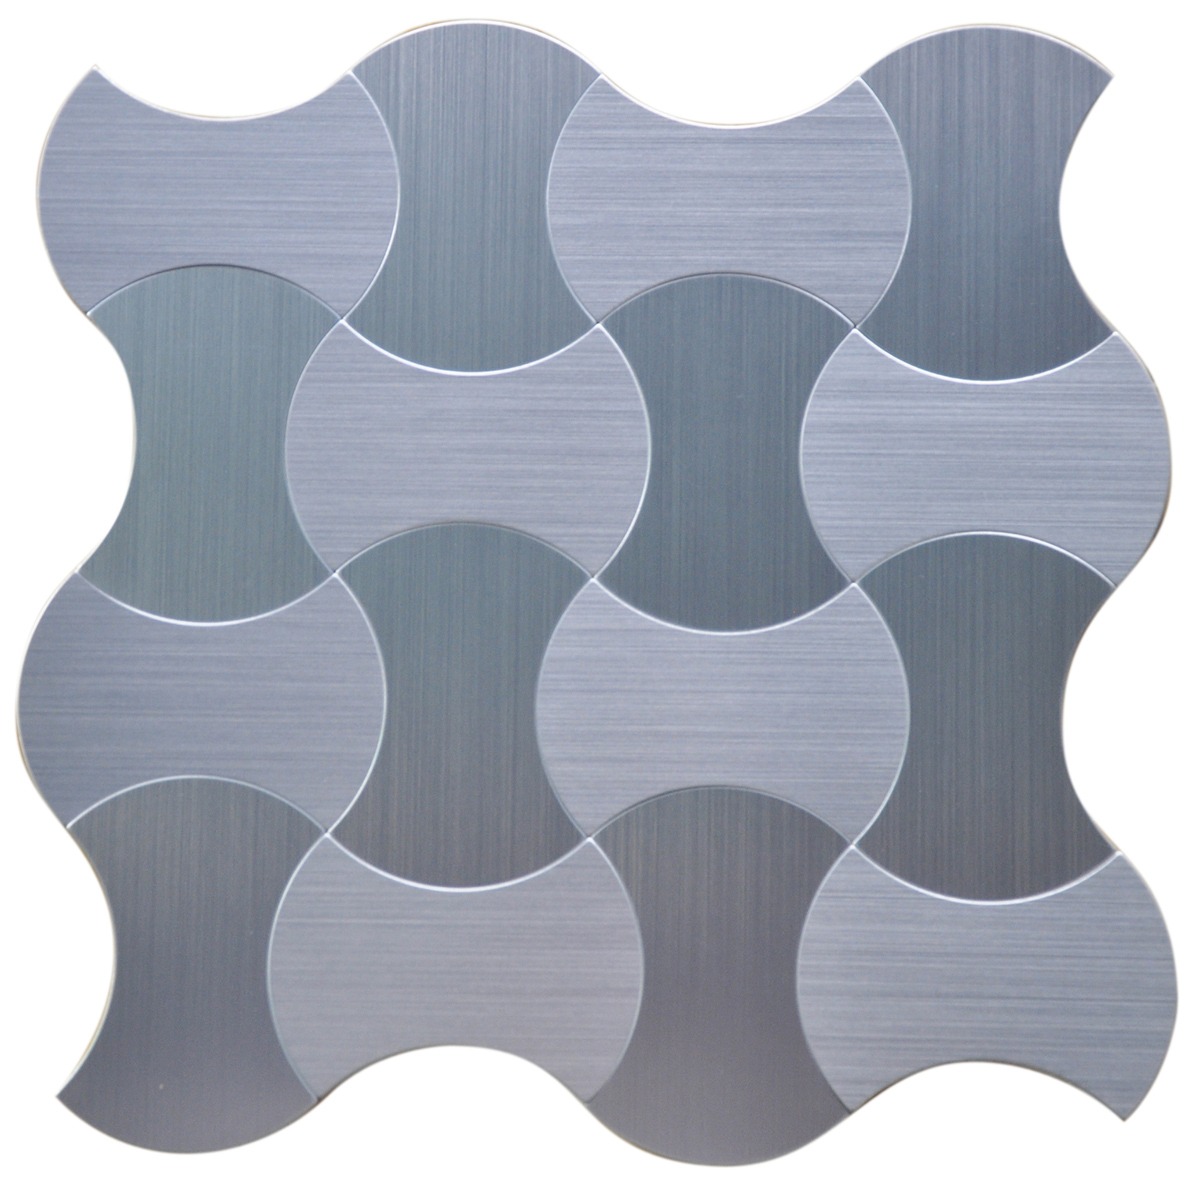 3d Wall Instant Mosaic Stainless Steel L N Stick Tile 6 12 X12 Pieces